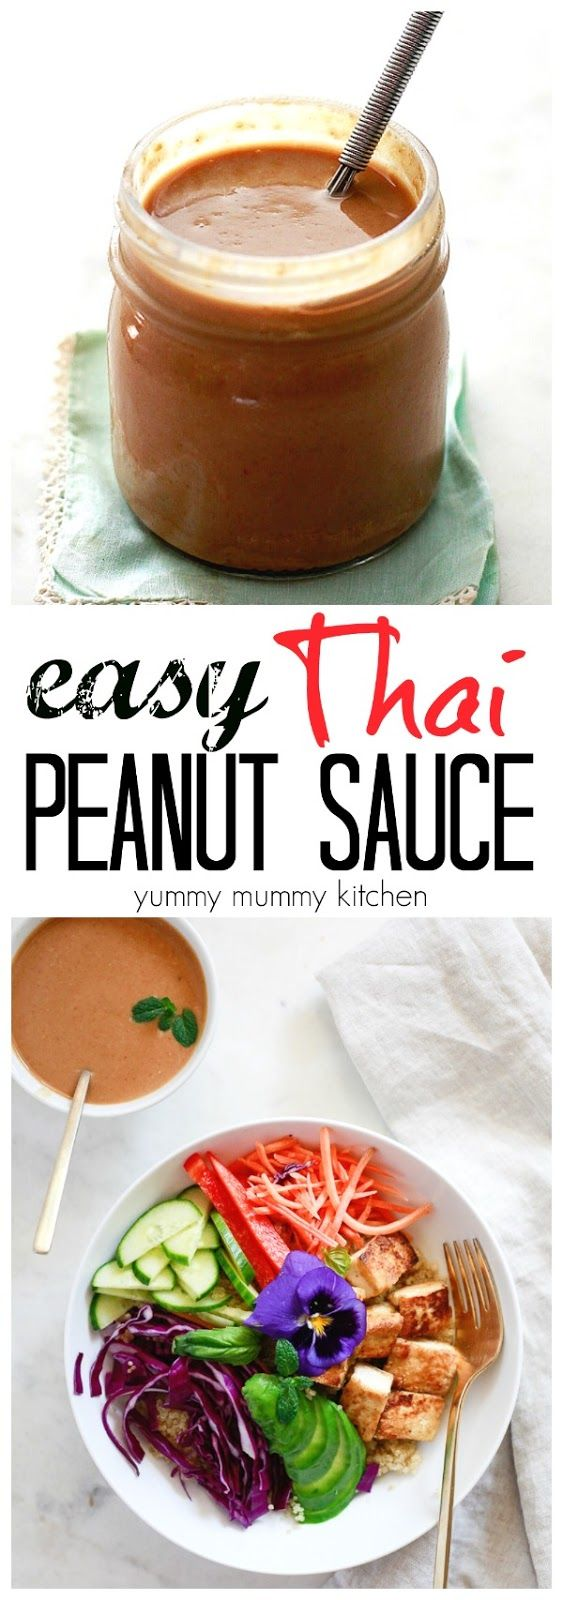 Delicious Thai peanut sauce for spring rolls, Buddha bowls, satay, and more. This easy vegan peanut sauce is made with a simple ingredients.